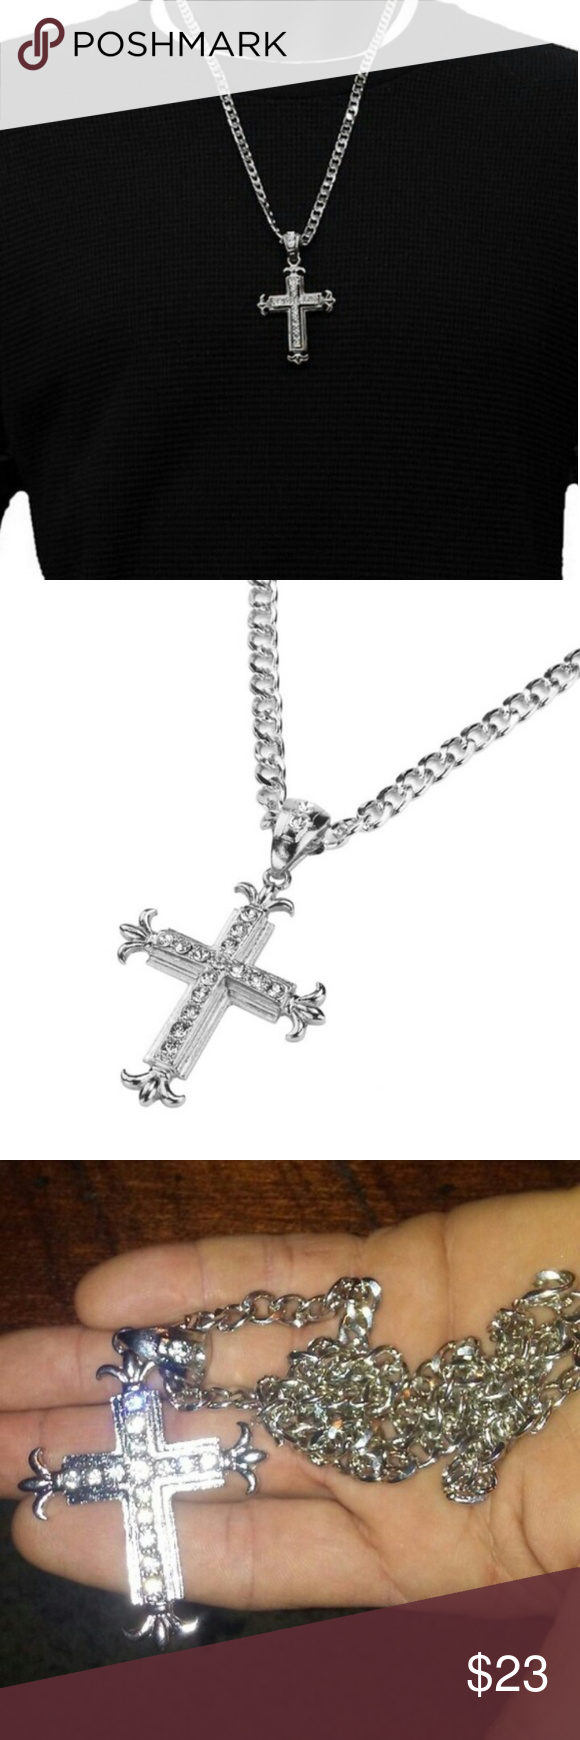 Mens silver iced out cross pendant chain boutique hip hip chains